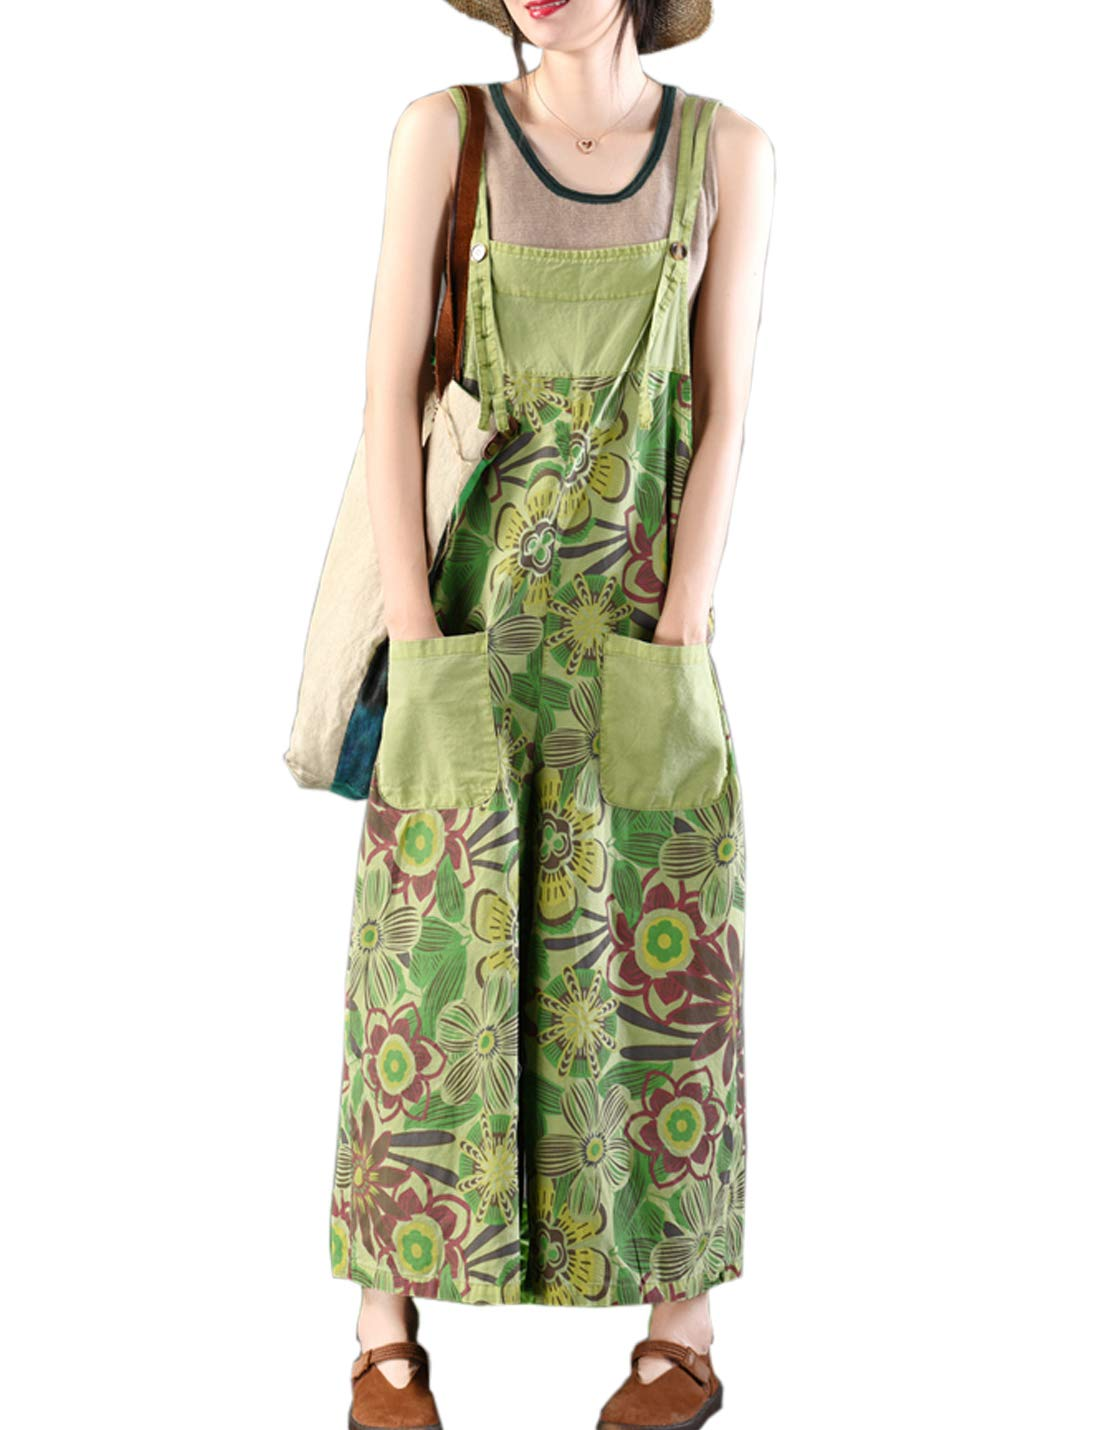 Flygo Women's Loose Baggy Cotton Wide Leg Jumpsuits Rompers Overalls Harem Pants (One Size, Style 15 Green)